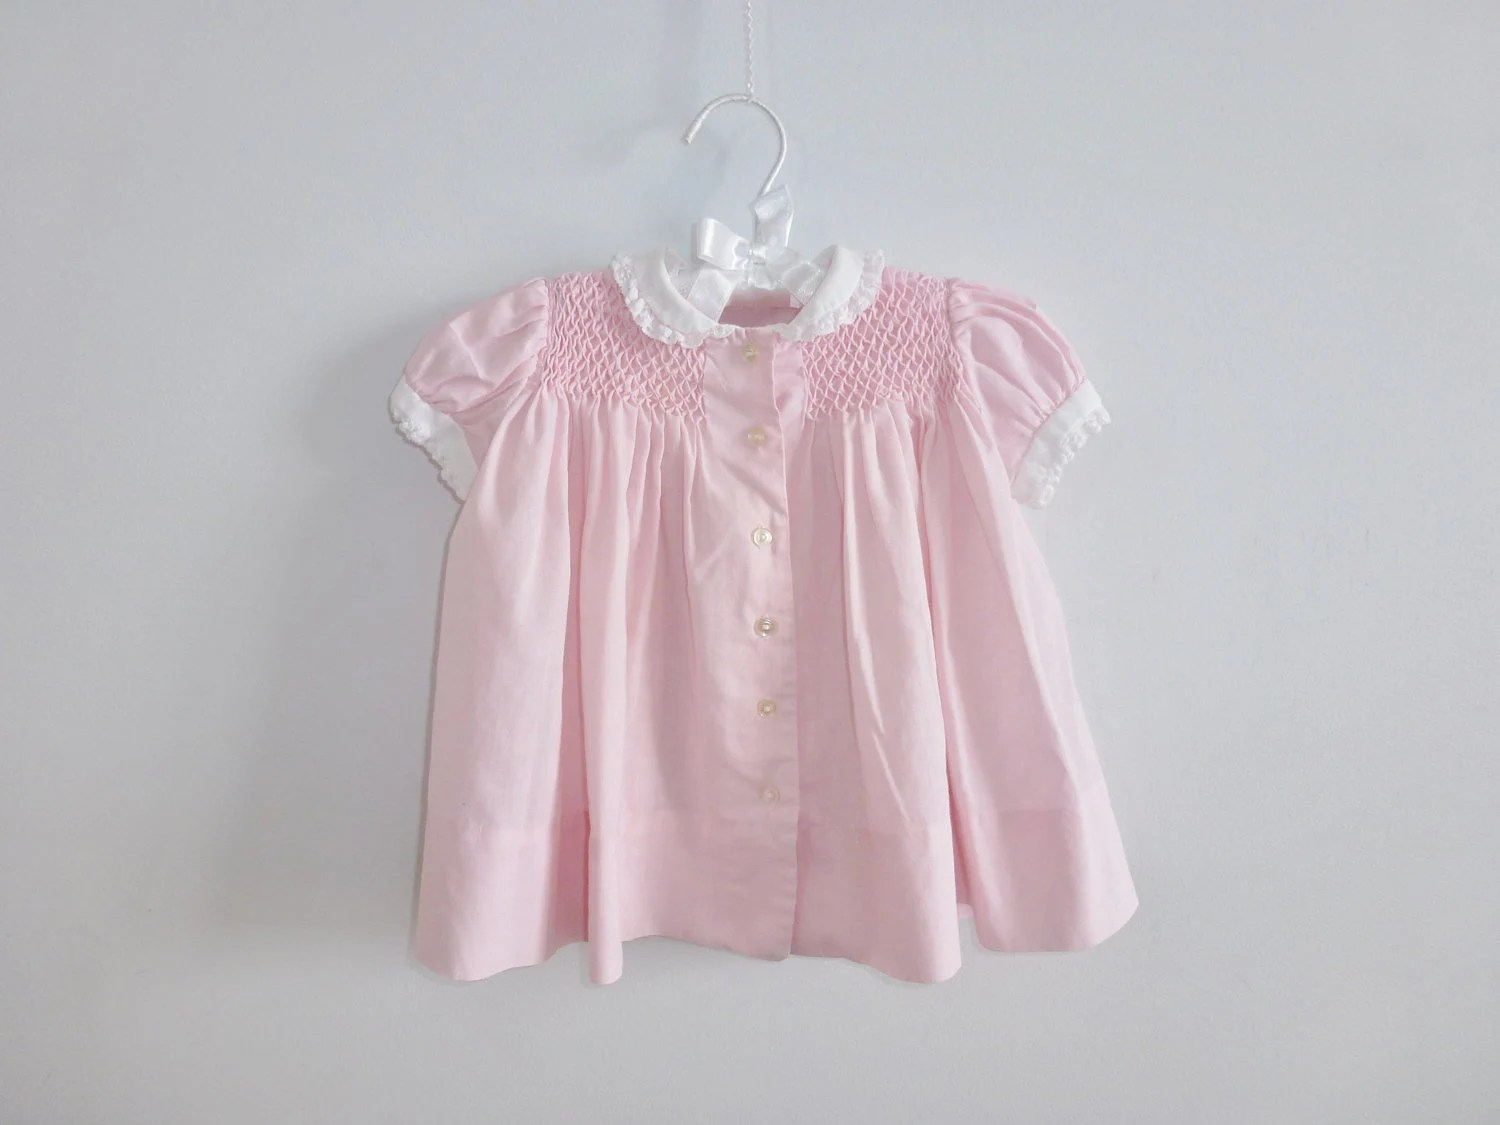 Vintage Soft Pink Smocked Baby Dress - Apearsvintagegoodies